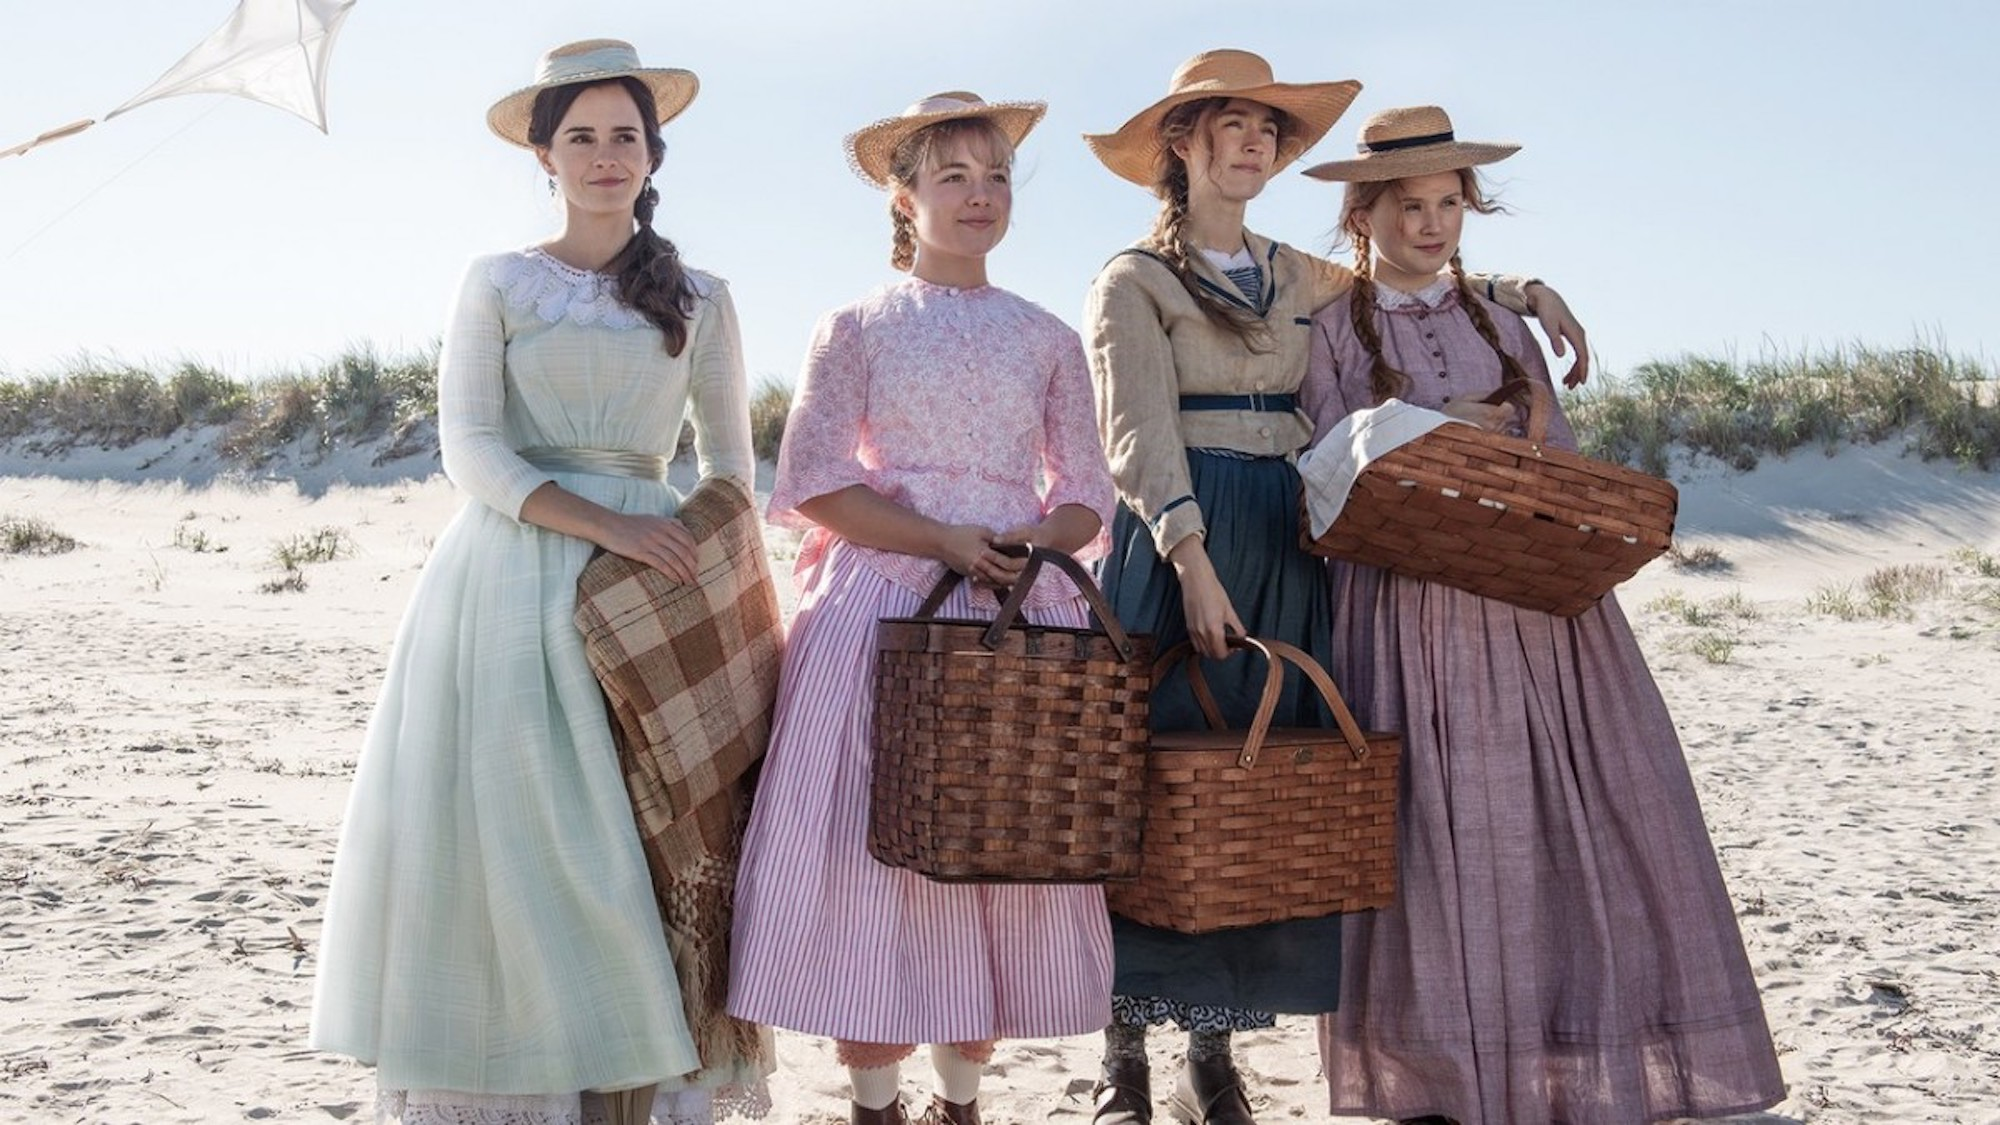 Greta Gerwig's Little Women woven baskets